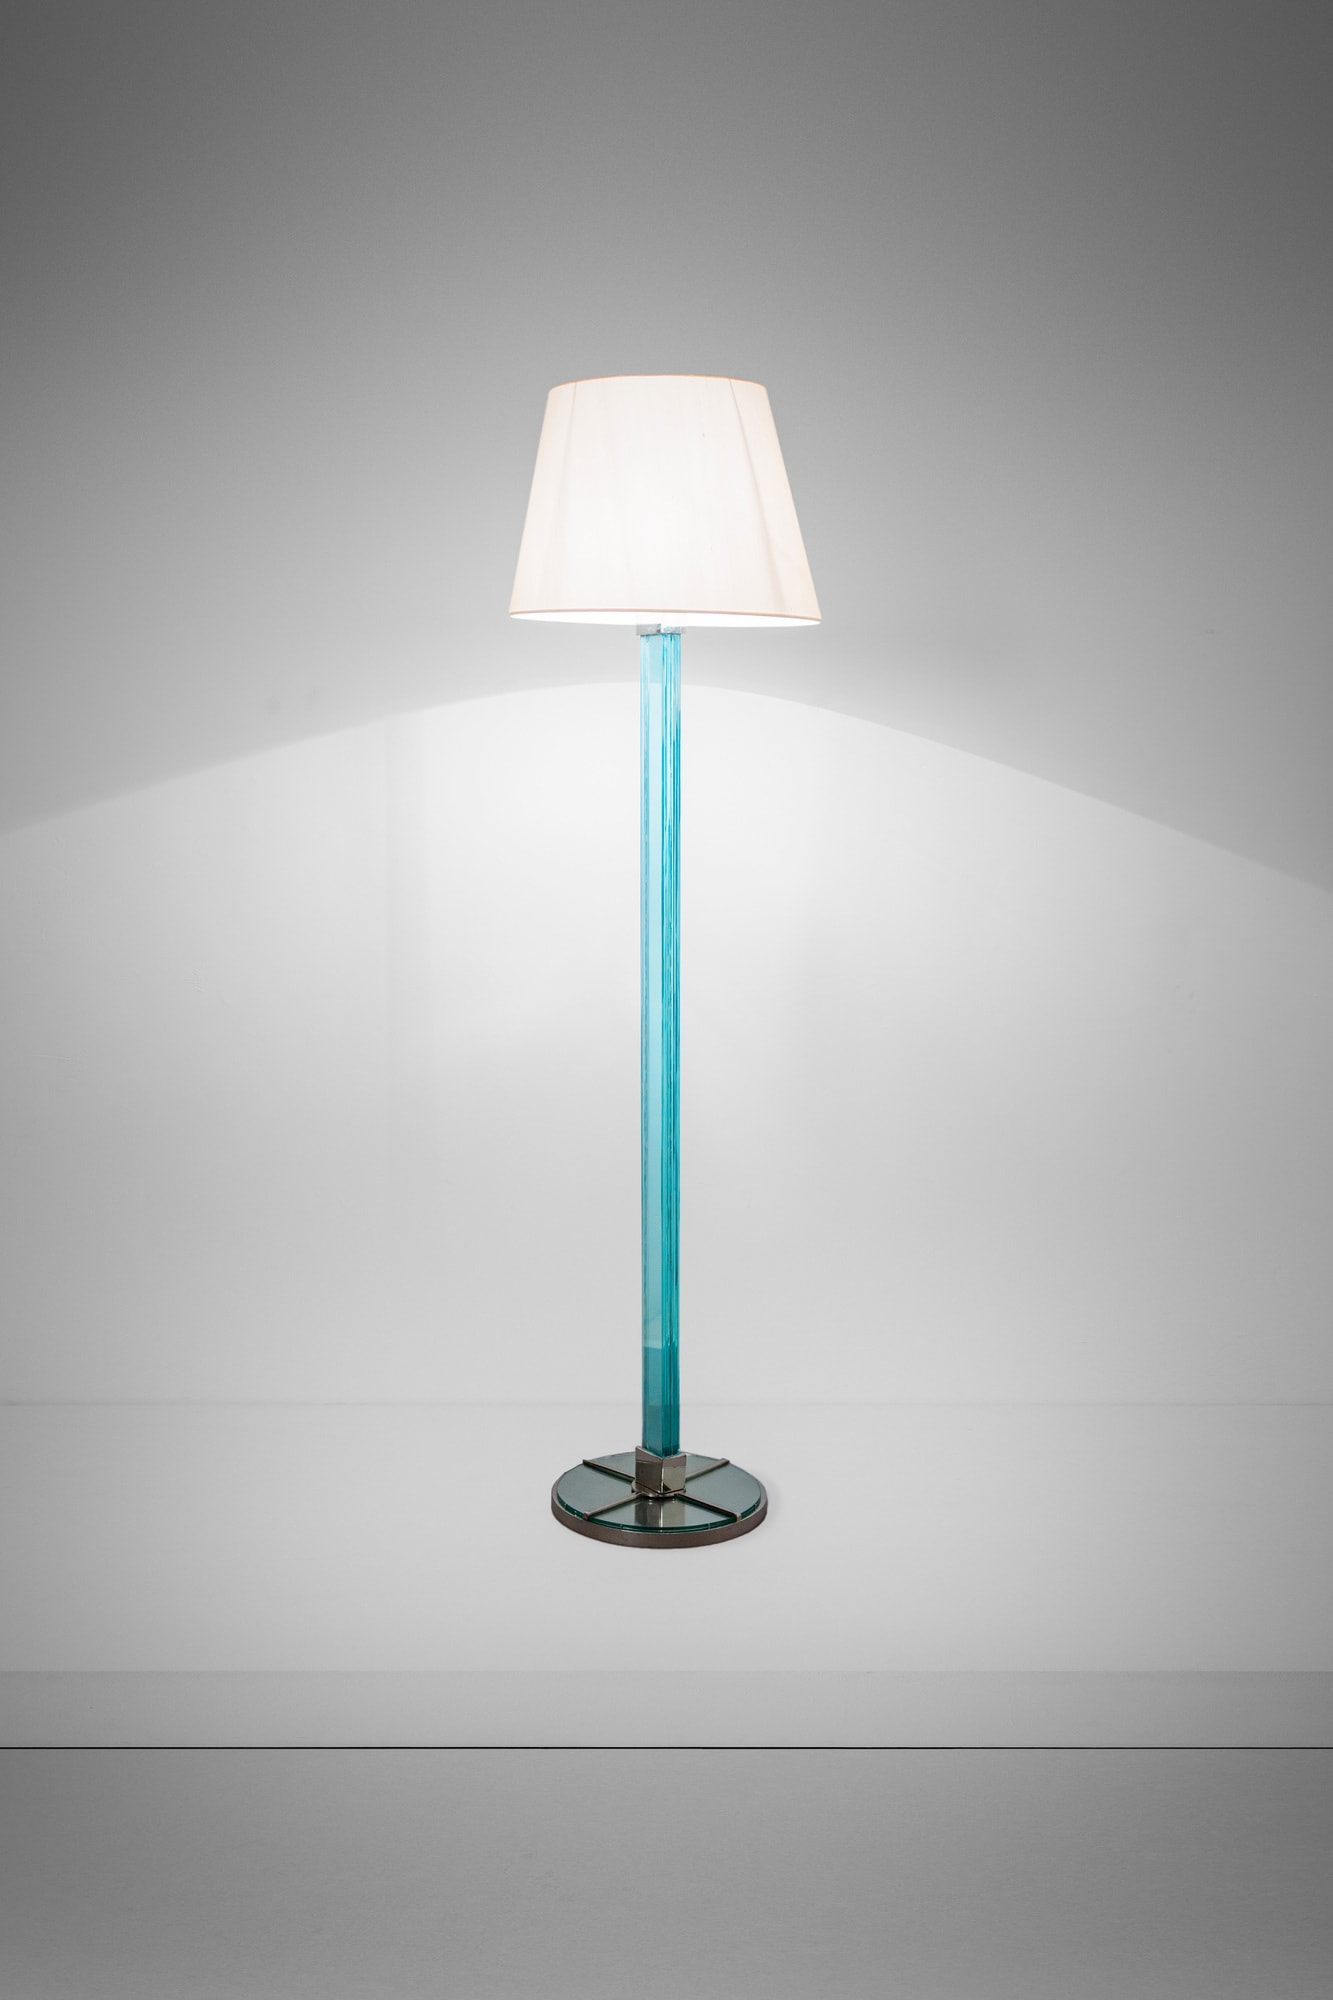 Syrie Maugham, Lampadaire, vue 01